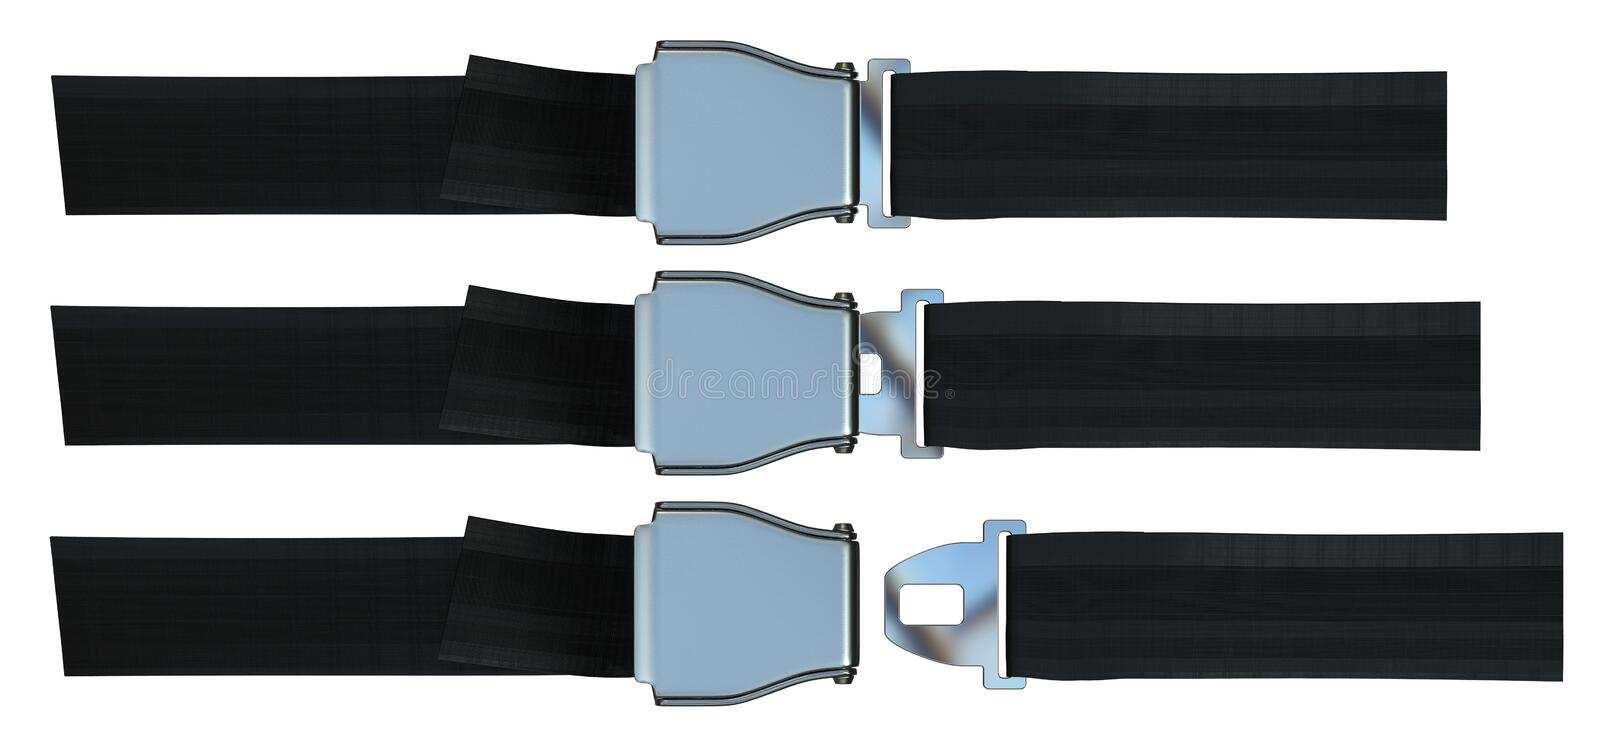 Aviation seat belt vector illustration